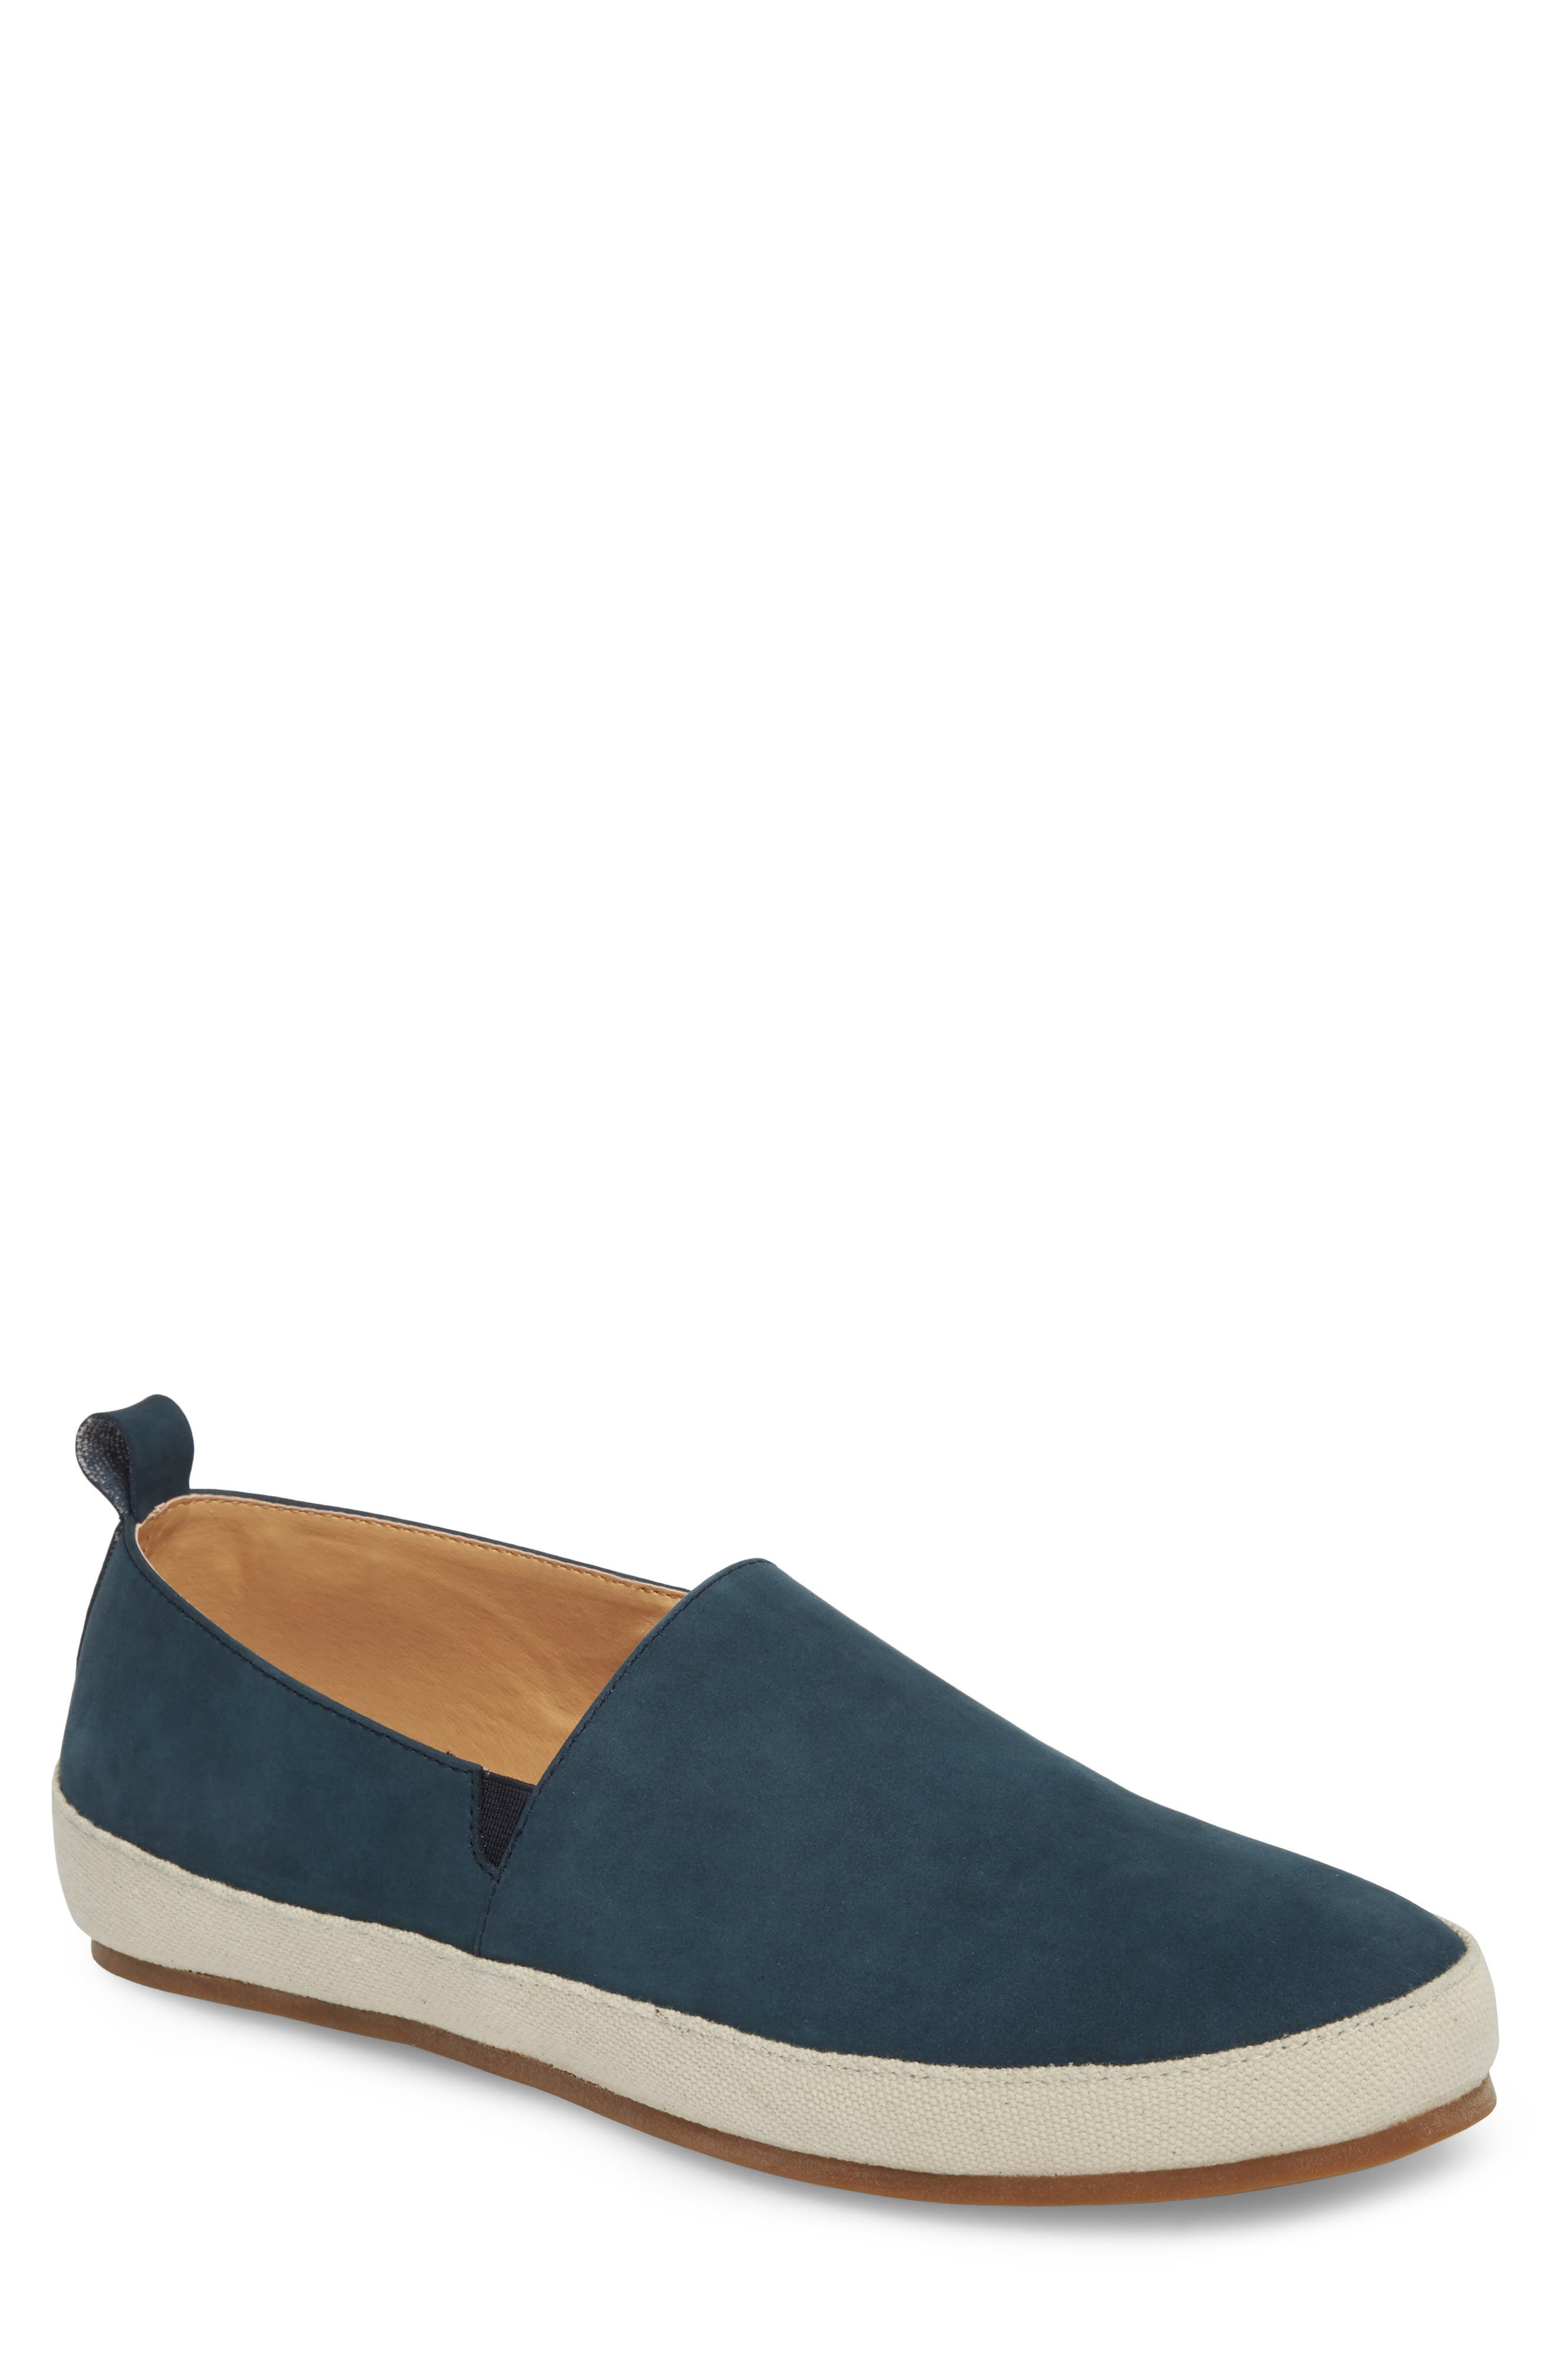 Wynne Slip-On,                             Main thumbnail 1, color,                             Navy Suede